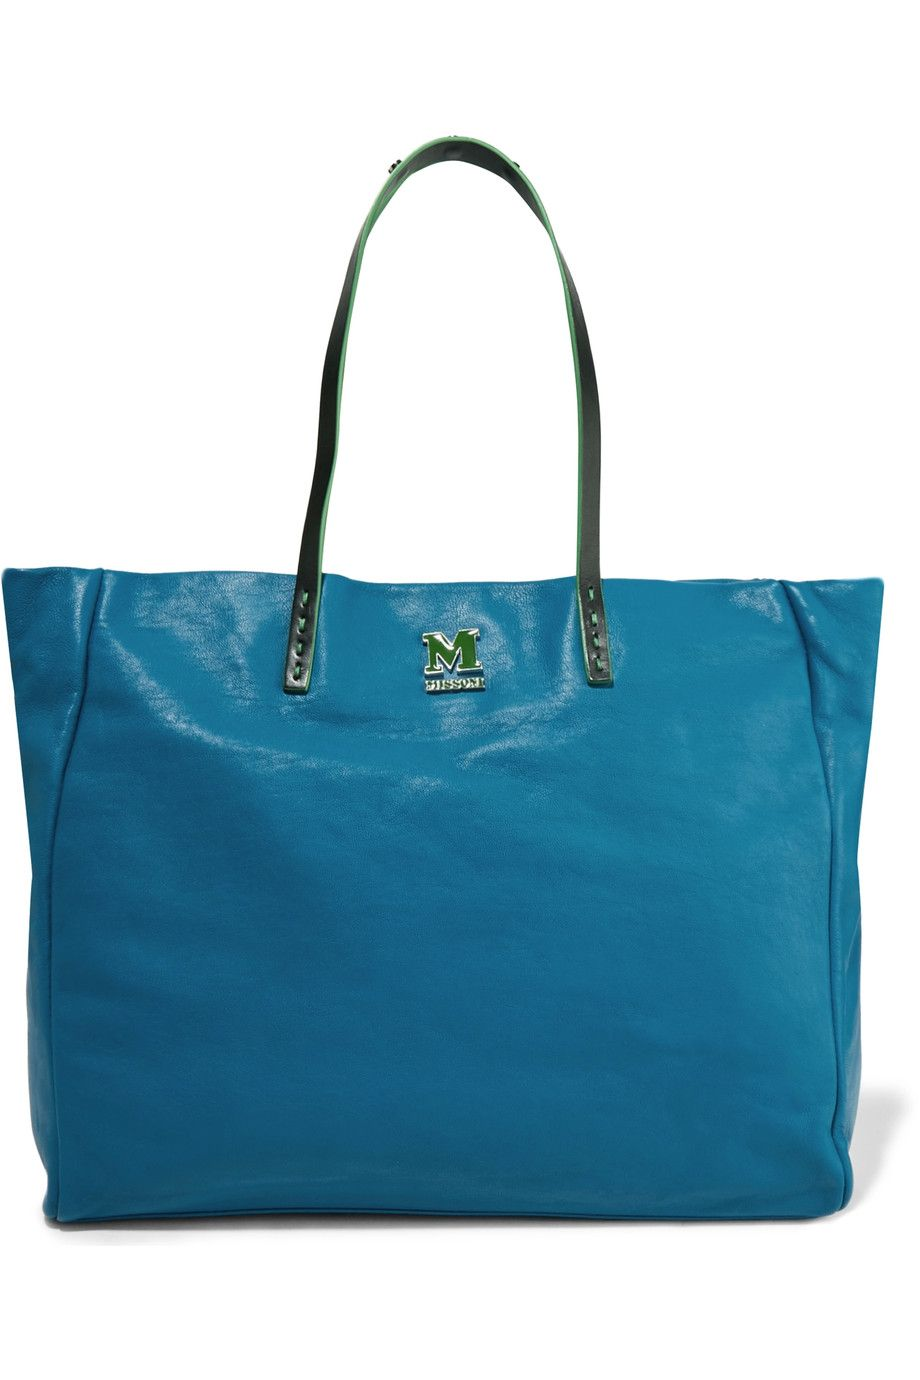 dc161f93fc M MISSONI Leather Tote.  mmissoni  bags  leather  hand bags  tote ...